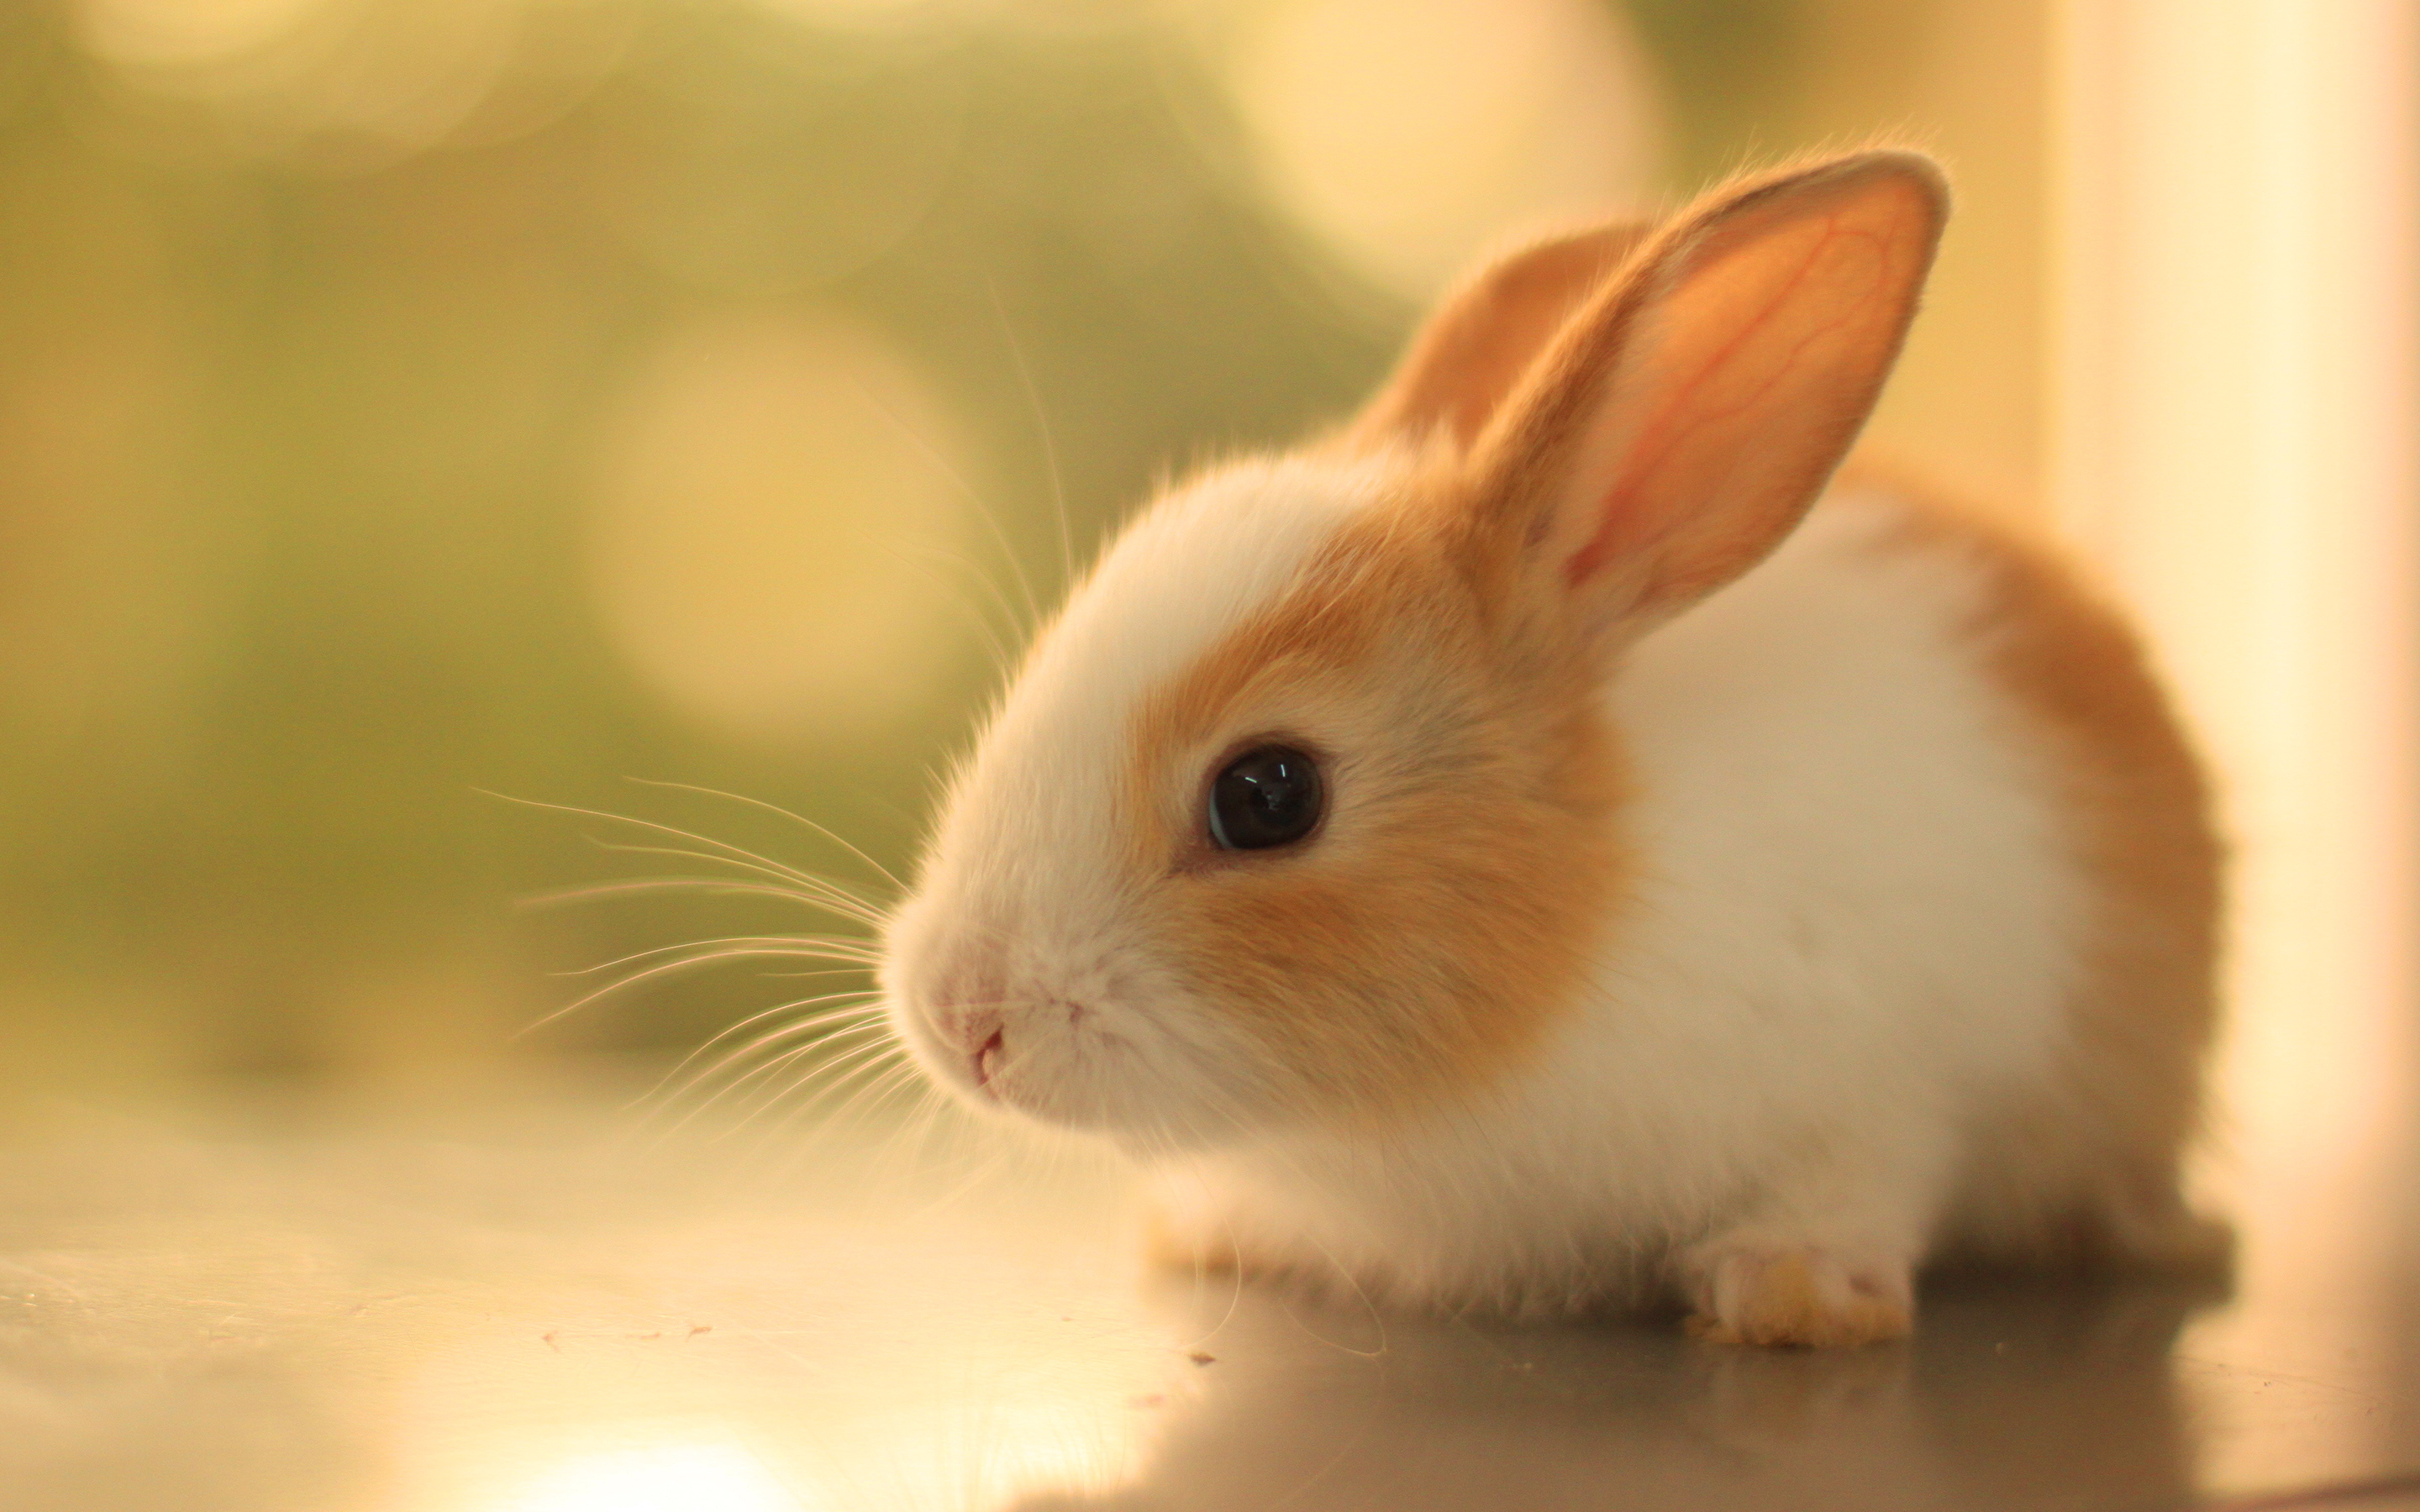 Cute rabbit hd Wallpapers Pictures Photos Images. «